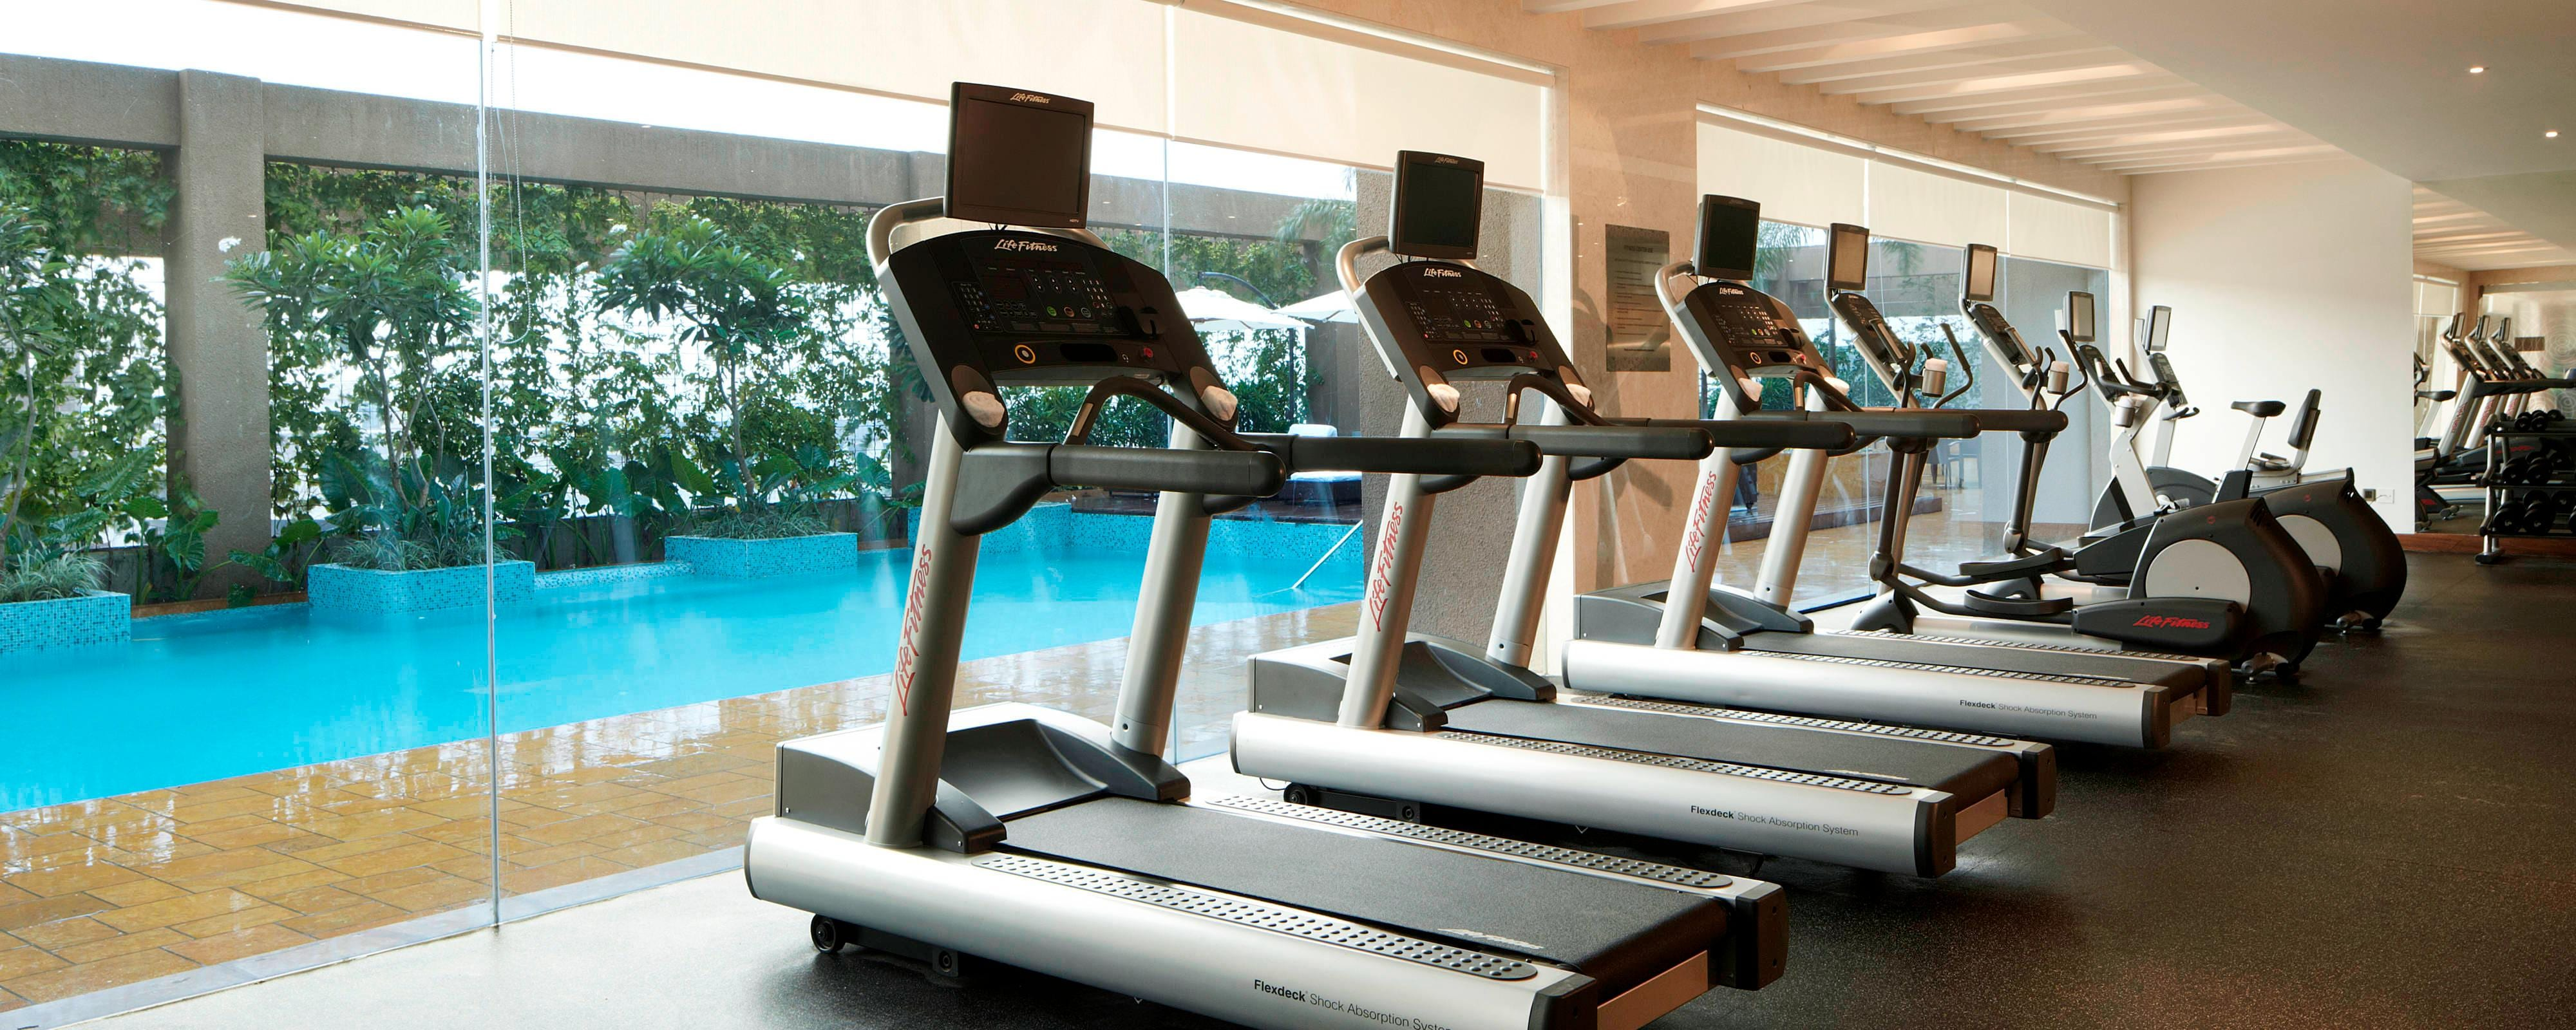 Chakan hotel with fitness centre and pool courtyard pune chakan